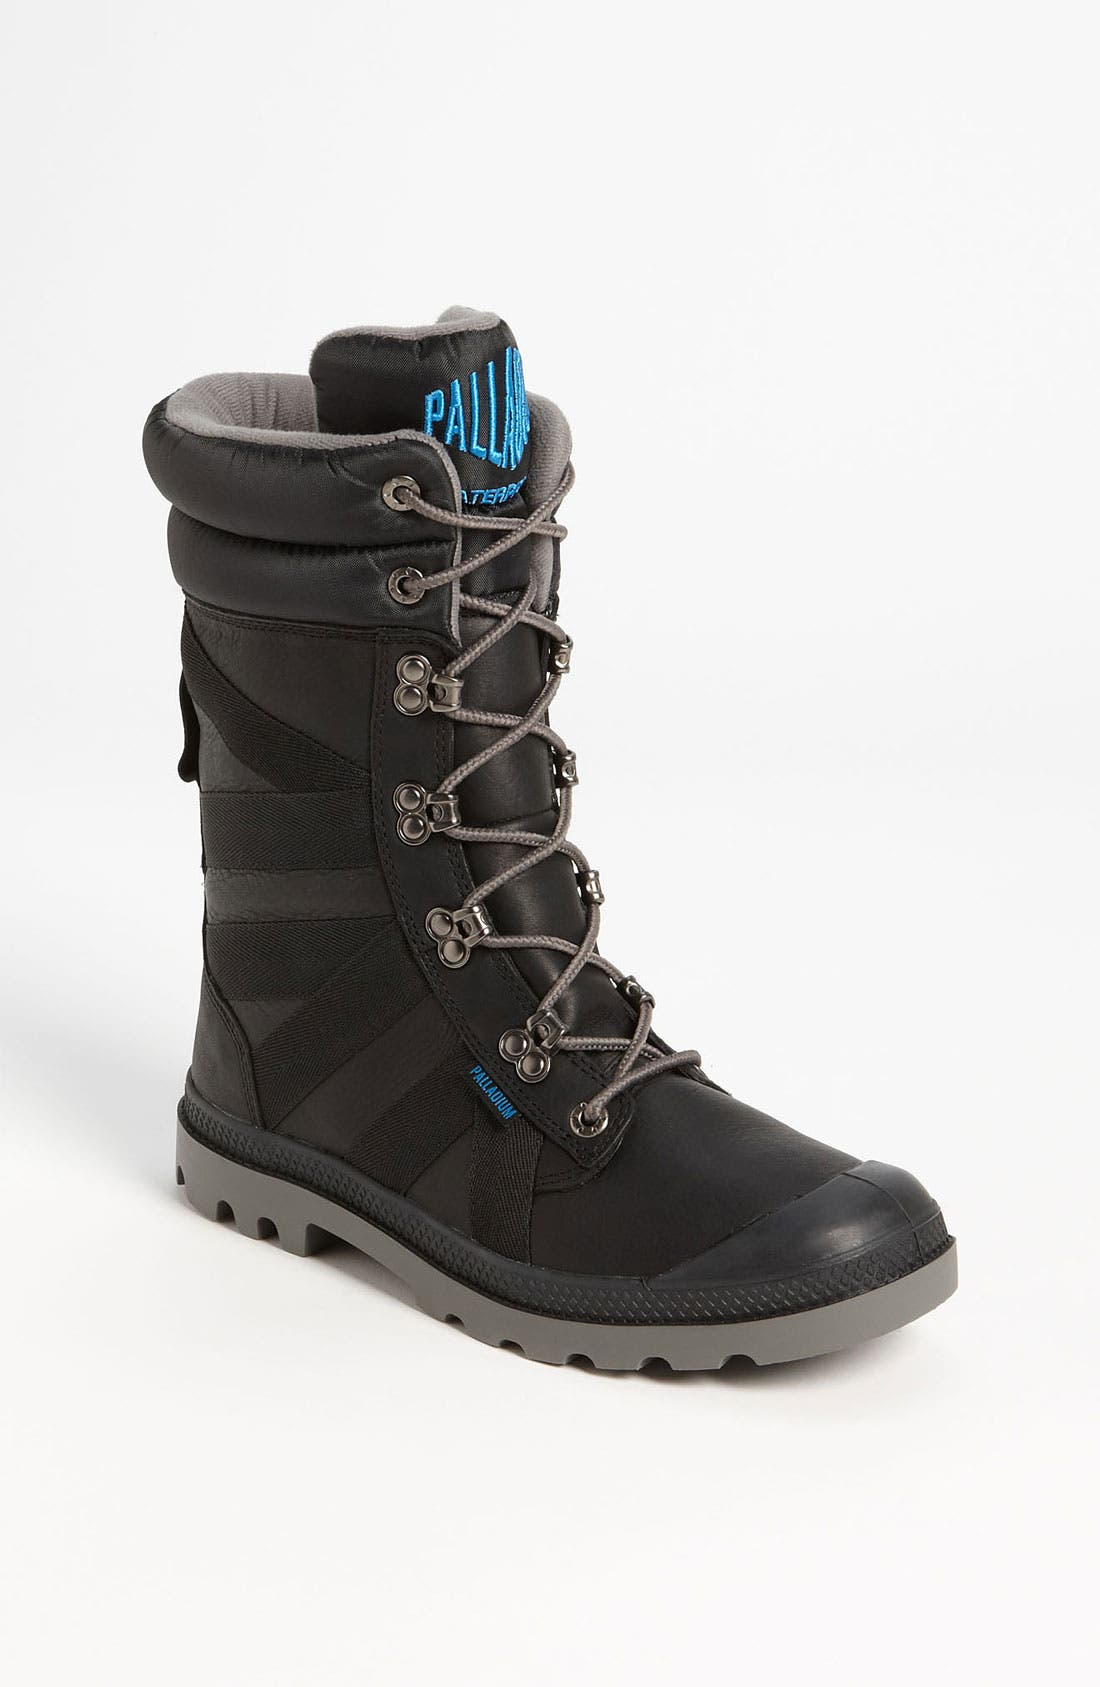 Main Image - Palladium 'Pampa' Snow Boot